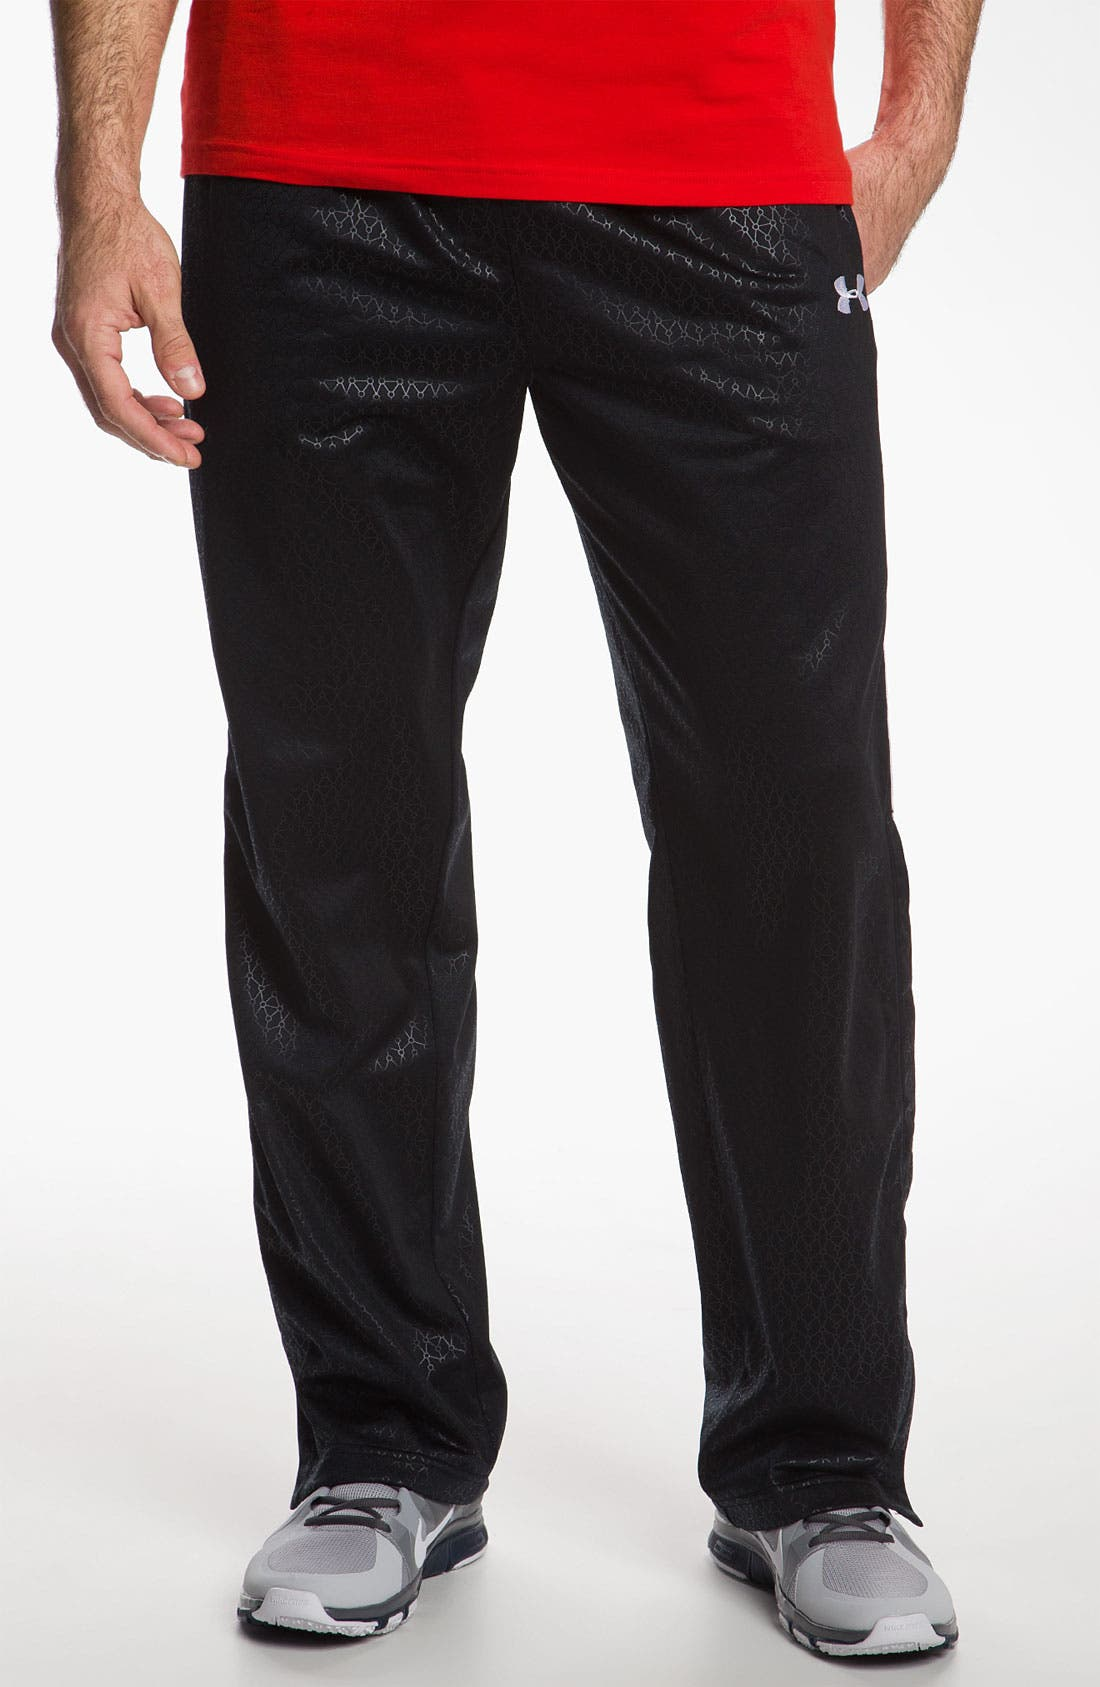 Alternate Image 1 Selected - Under Armour 'Pledge' Track Pants (Online Only)